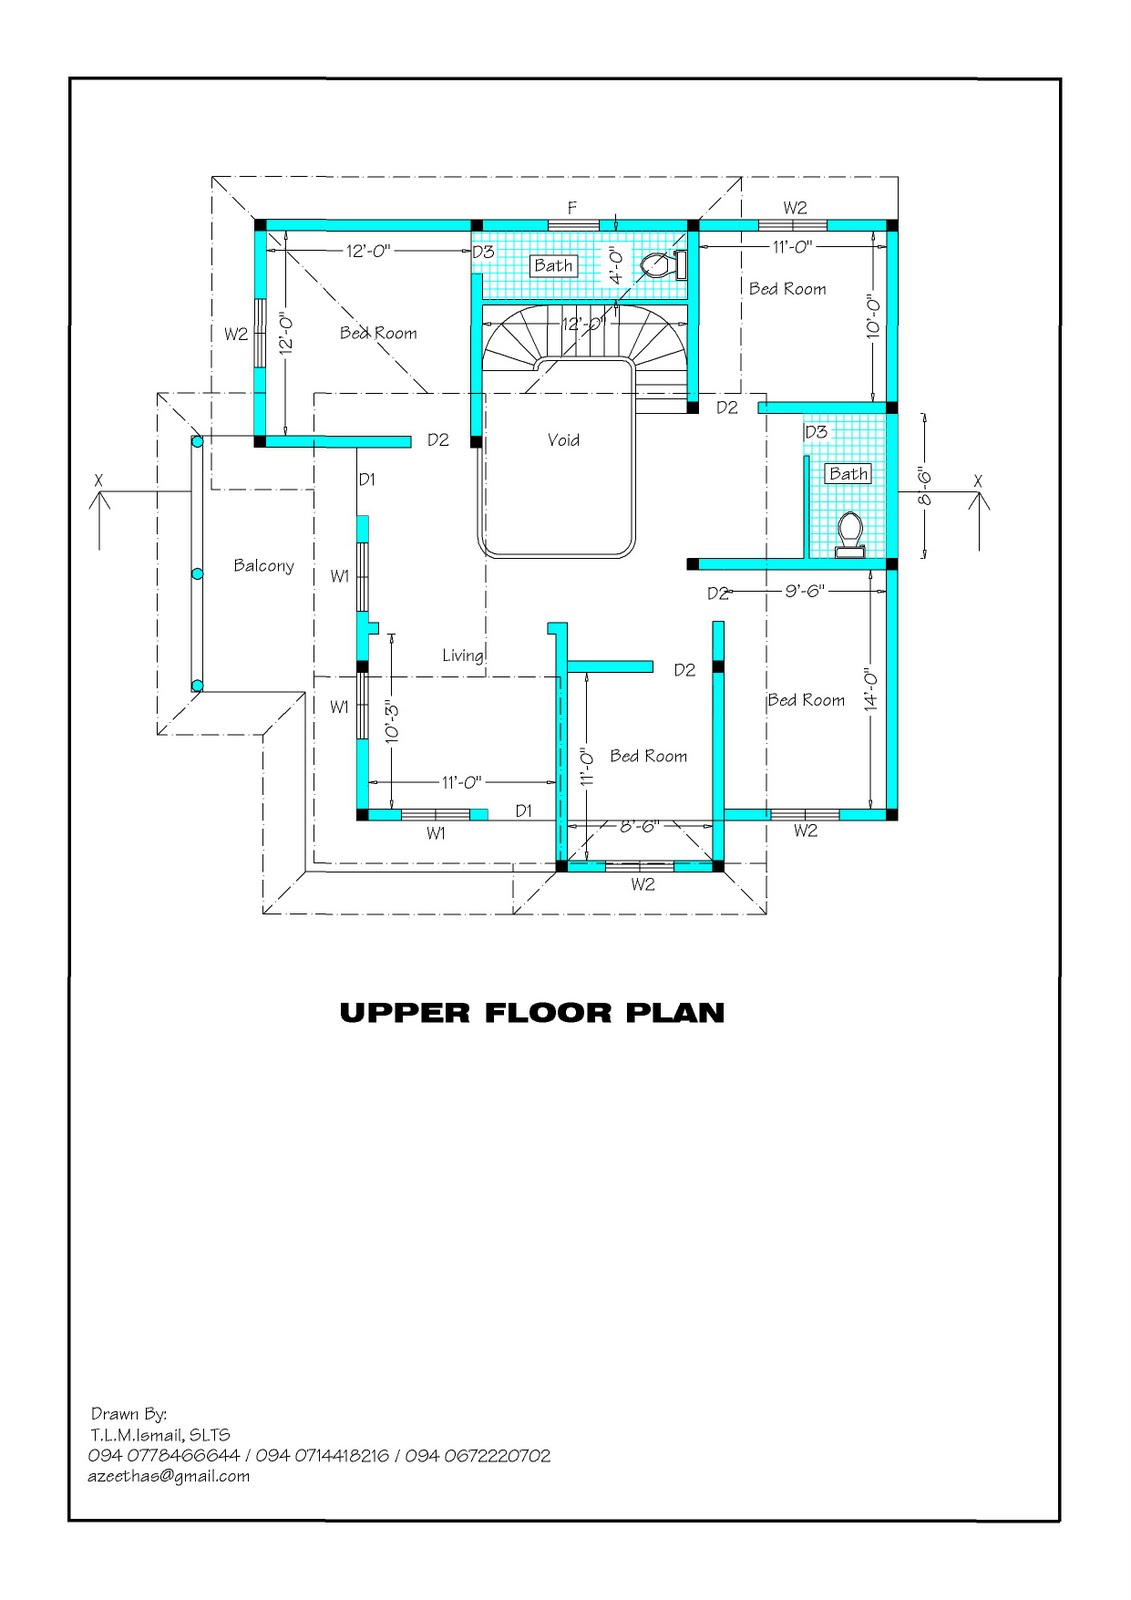 House plans designs sri lanka home design and style for Sri lanka house plans designs